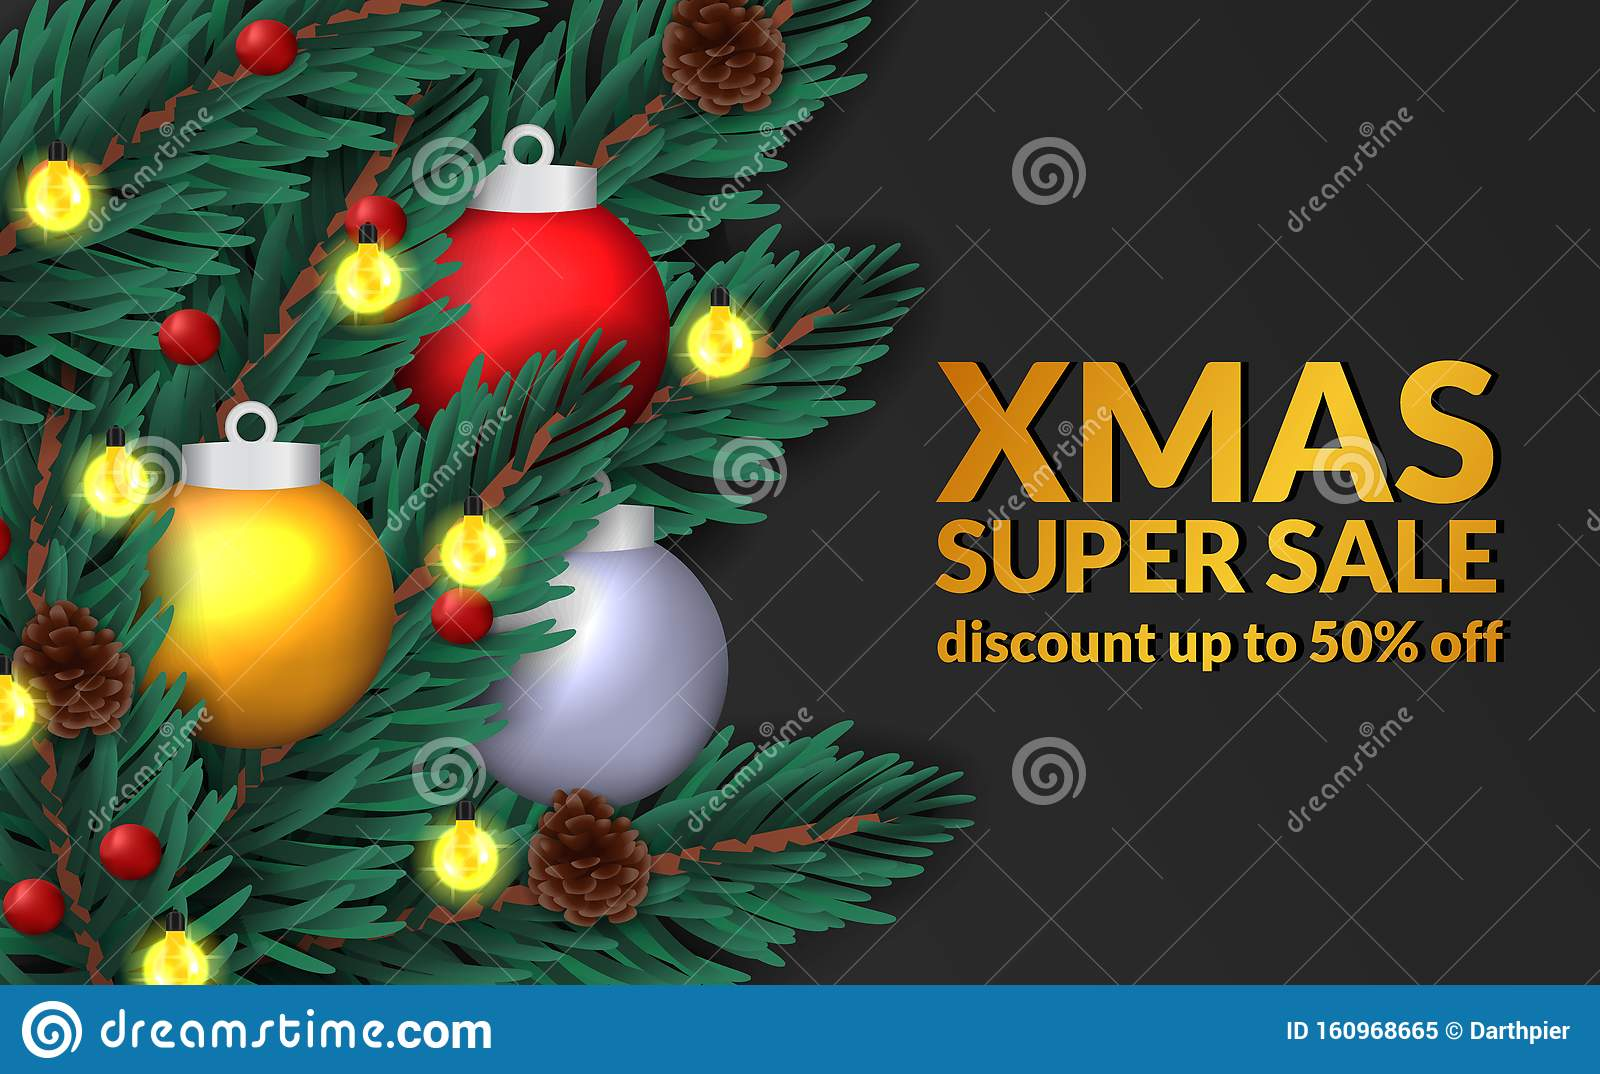 Fir Leaves Garland Decoration Top View With Pine Cone Bauble Ball Sphere Sale Offer Banner Template Stock Vector Illustration Of Border Holiday 160968665